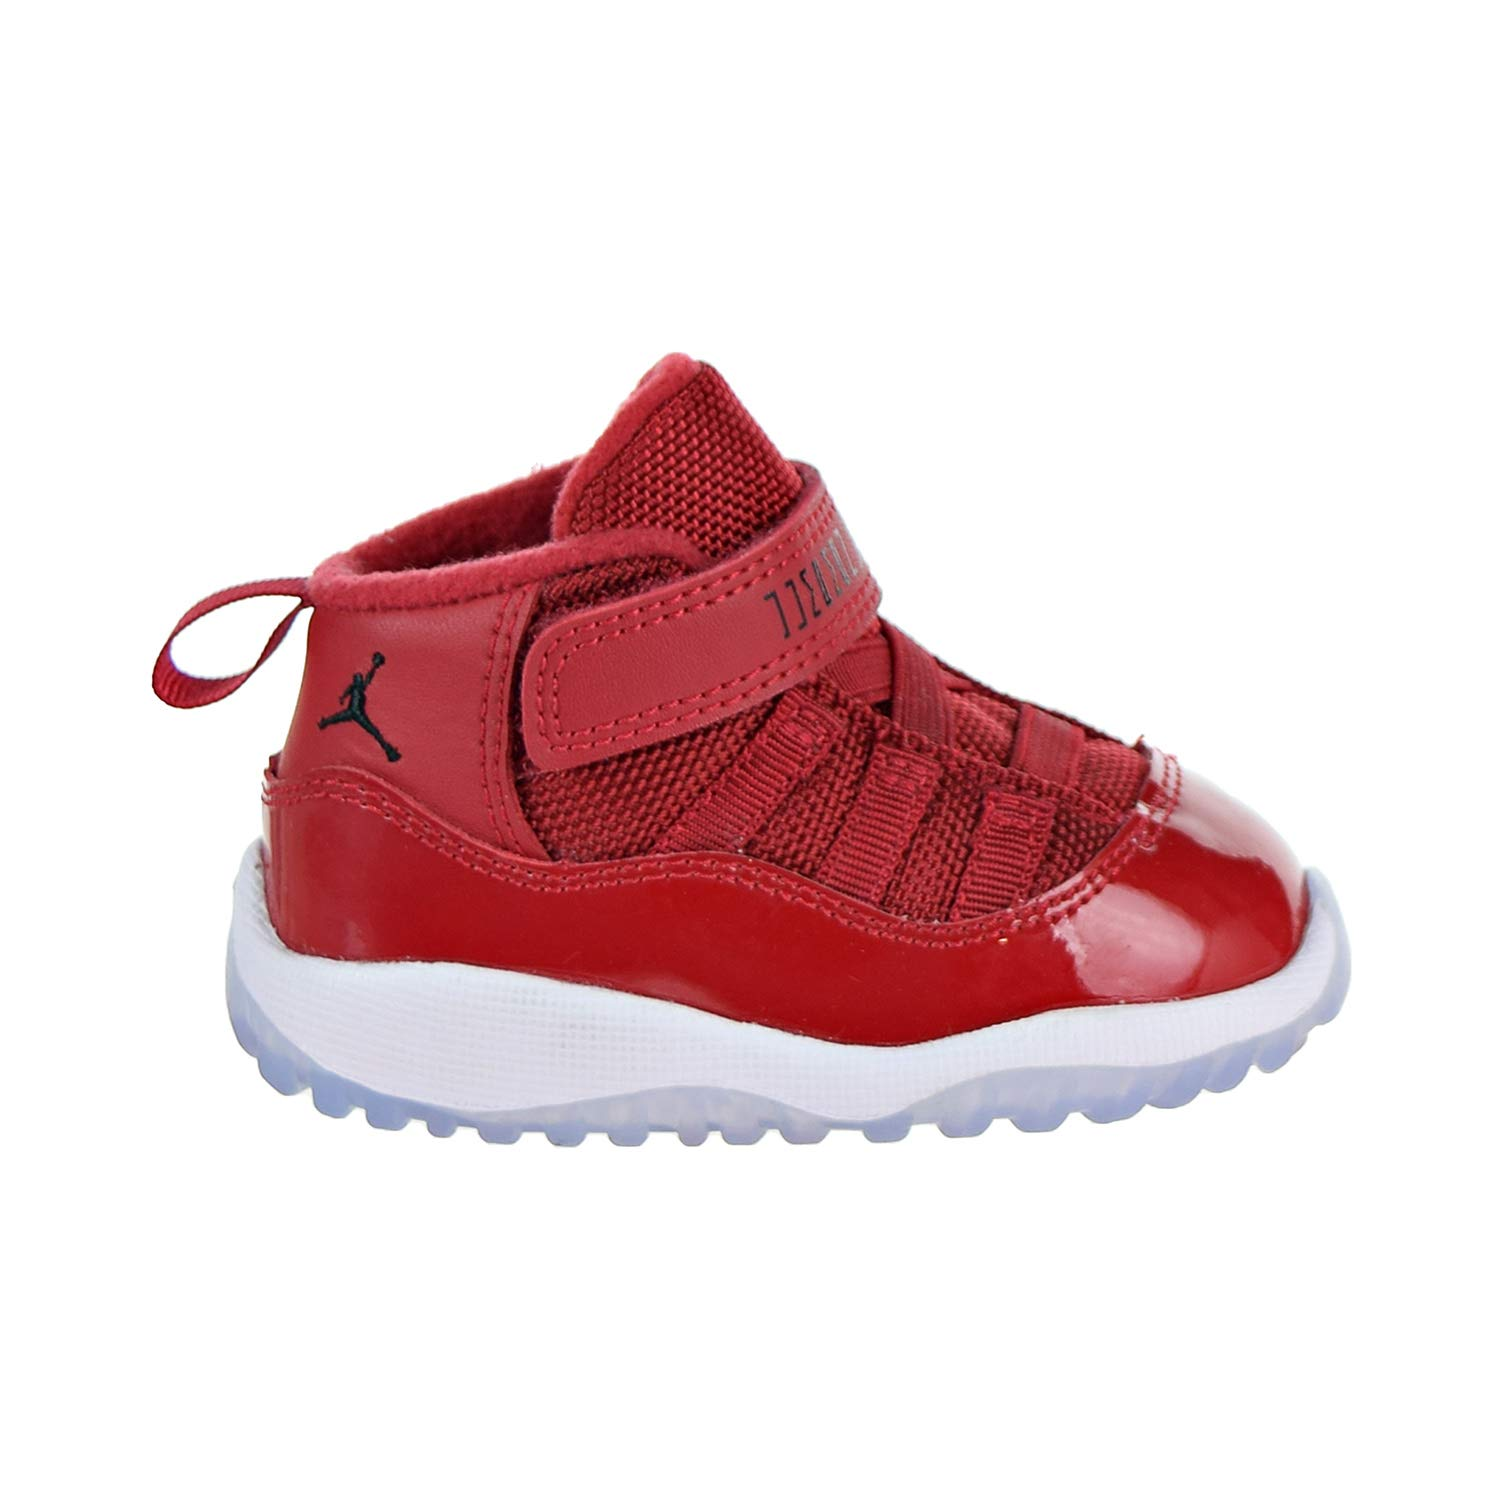 Nike 378040-623 Kids Toddler 11 Retro BT Jordan Gym Red Black White